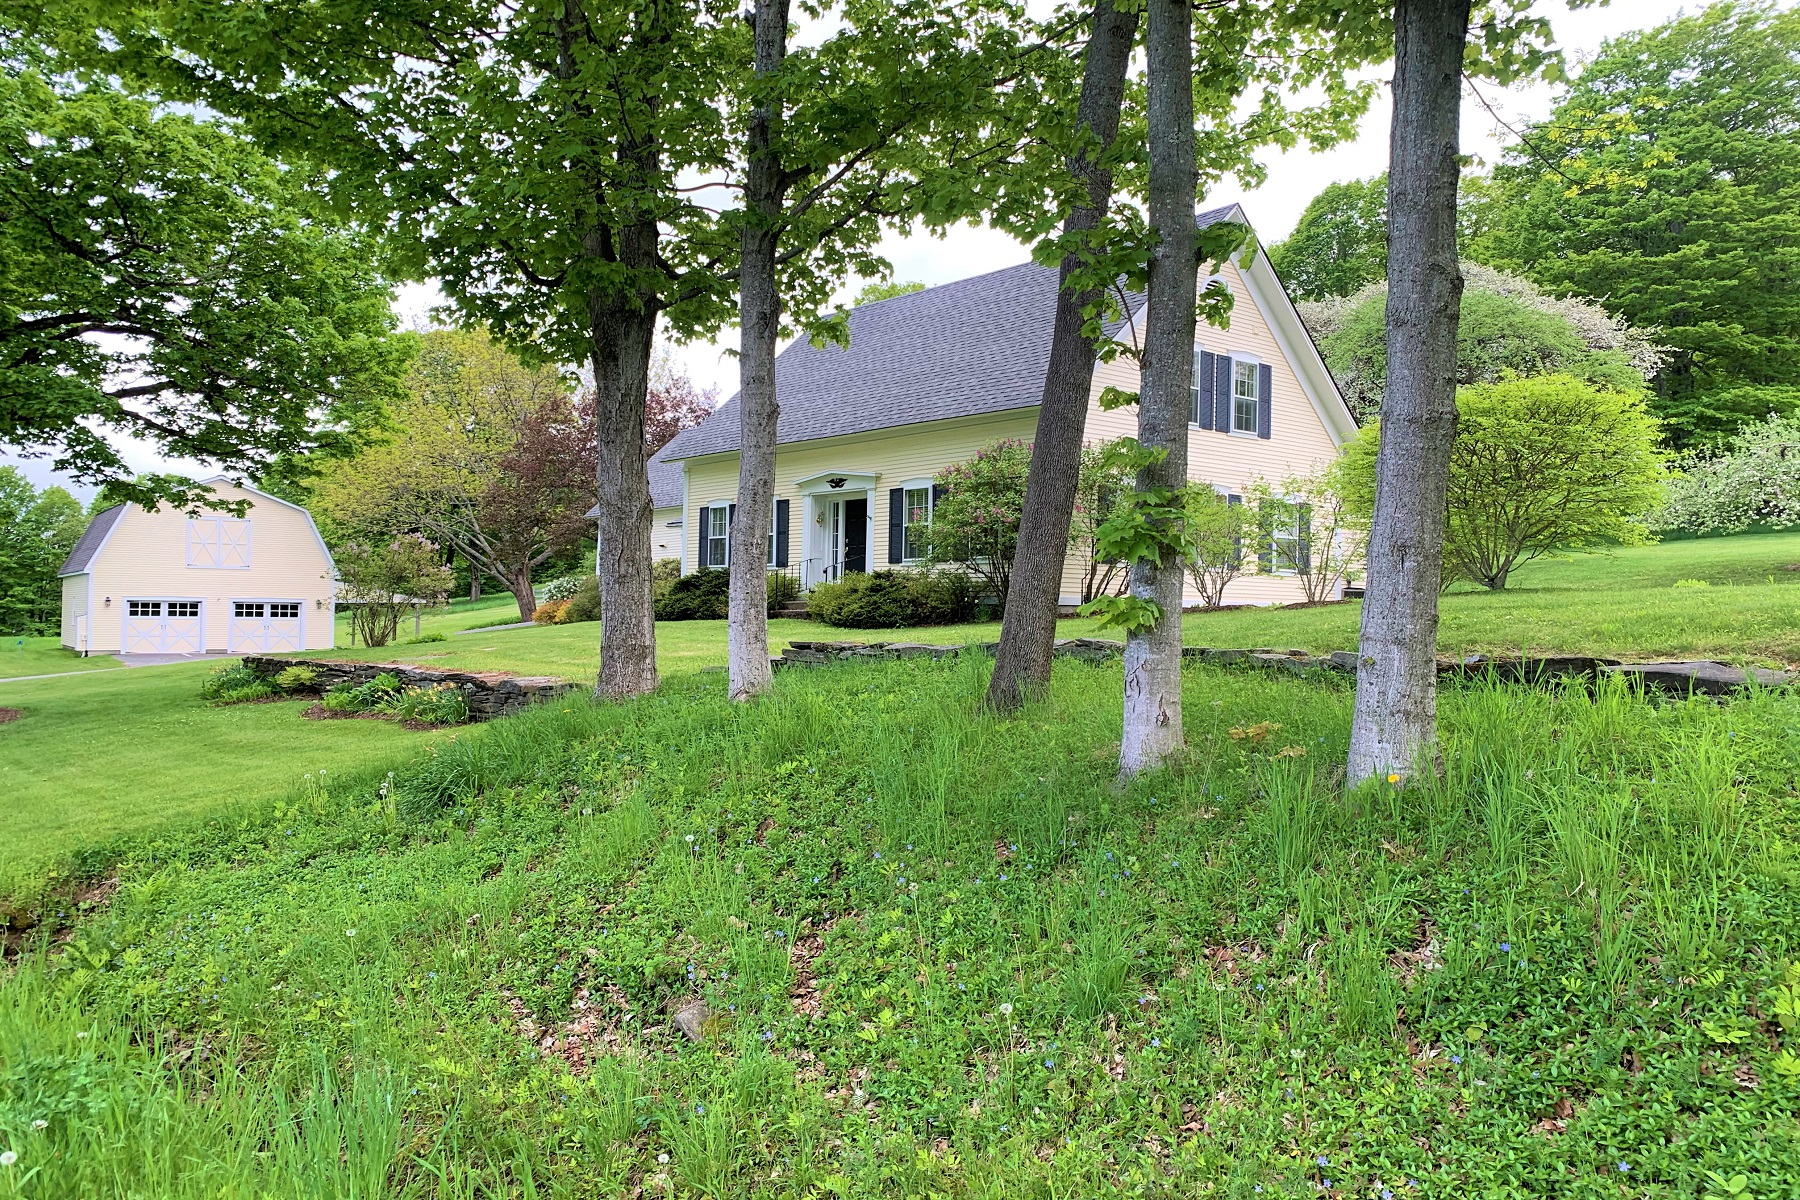 Single Family Homes for Sale at 1861 Historic Post & Beam Cape-Style Farmhouse 1073 Bible Hill Road West Windsor, Vermont 05037 United States